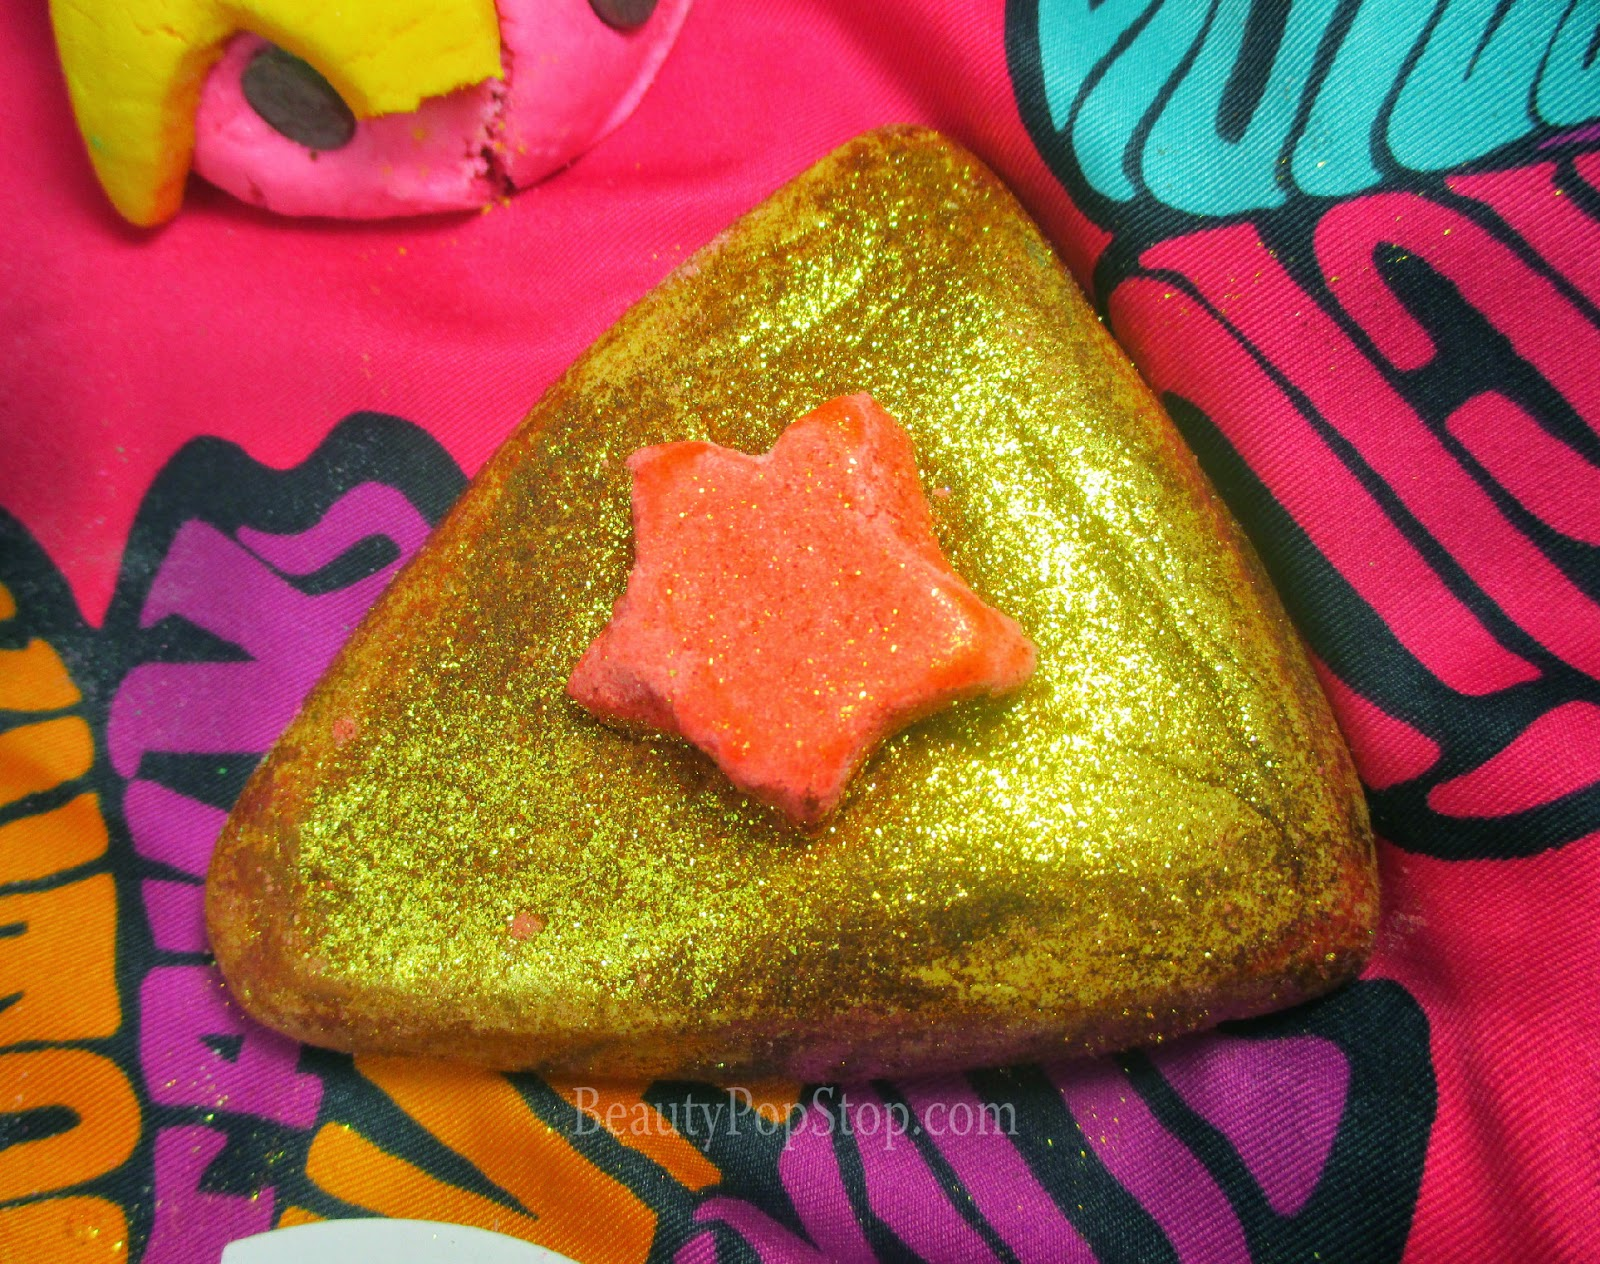 lush wonder woohoo bubble bar review